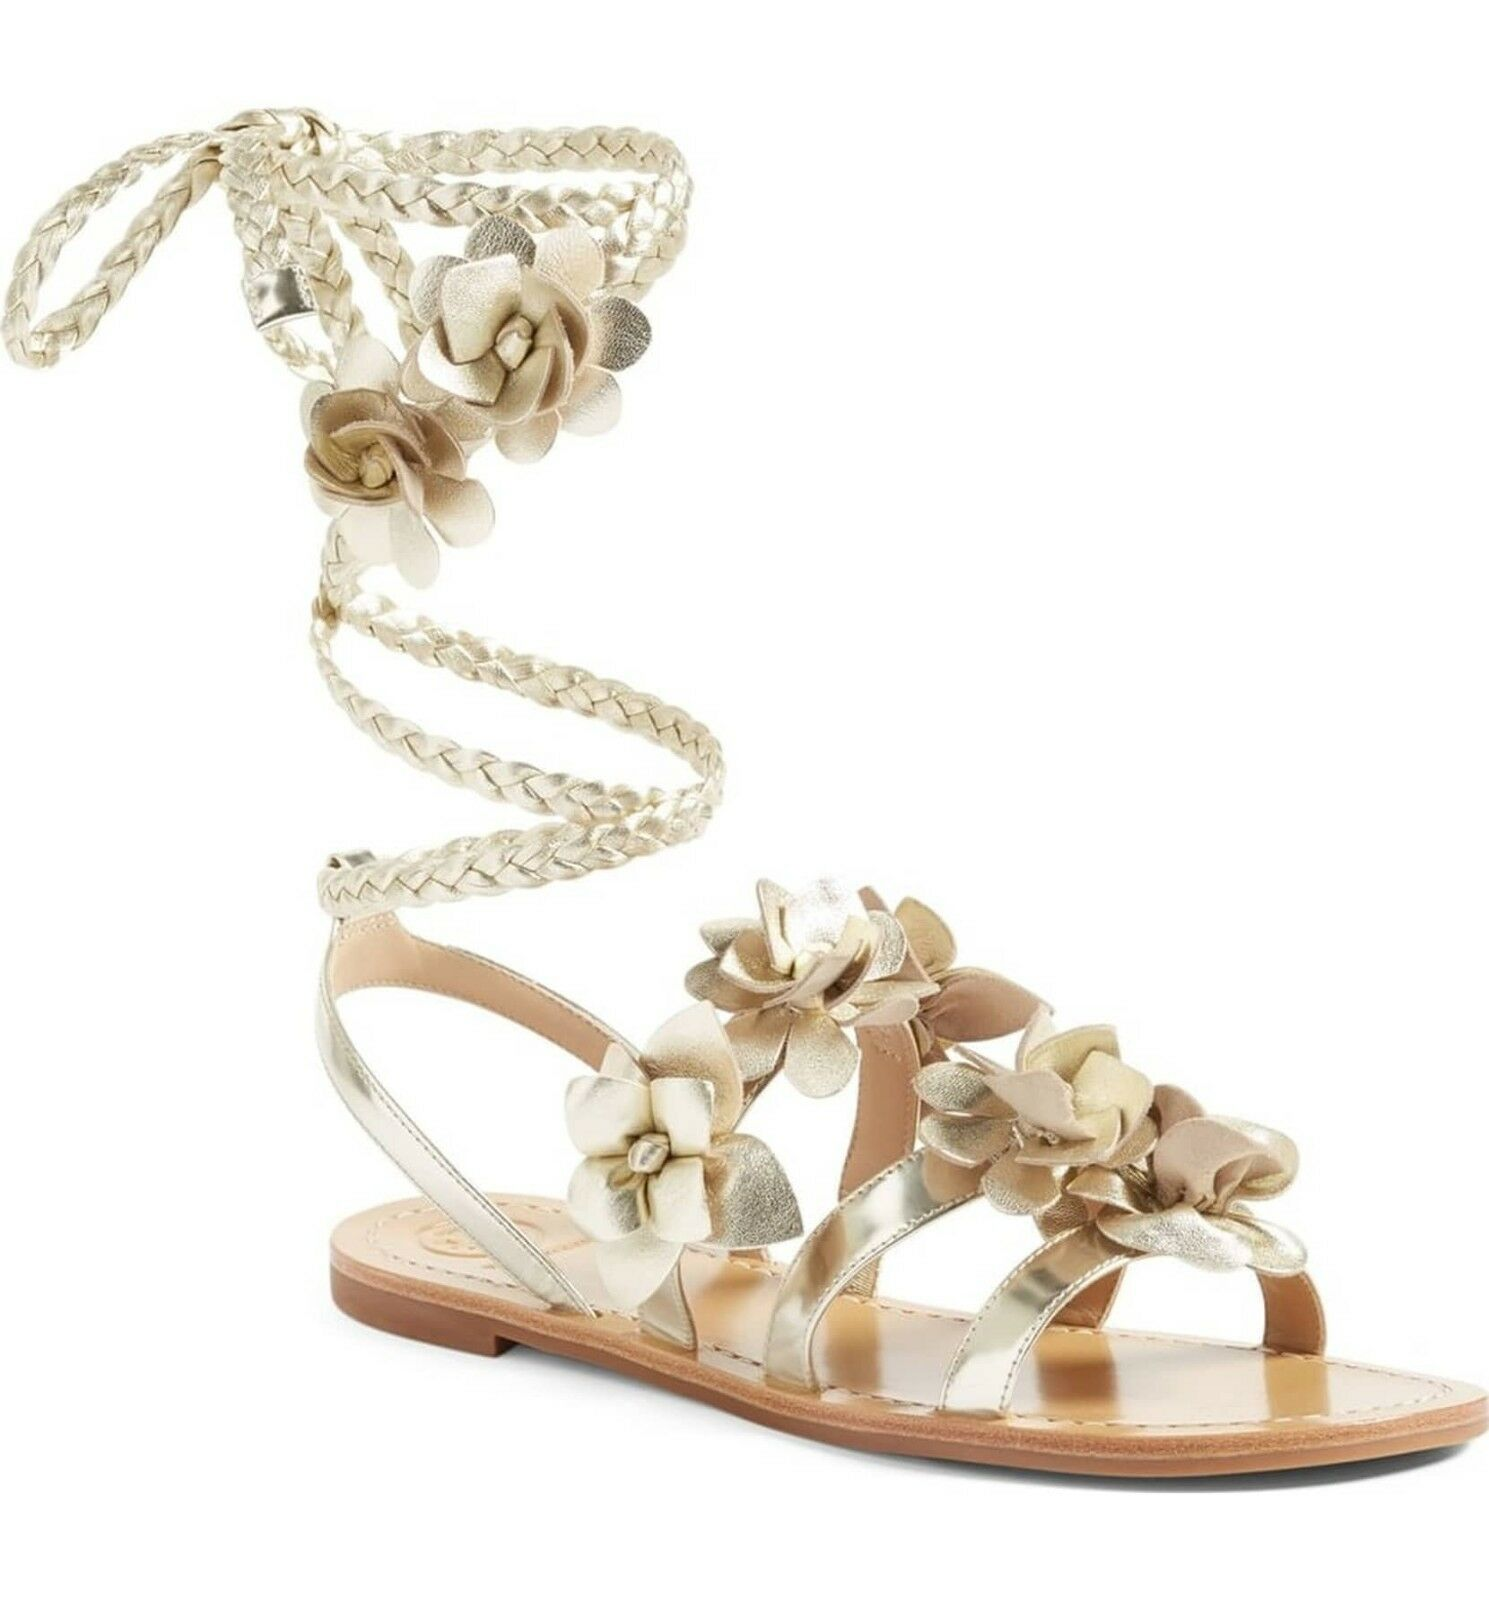 295 NEW Tory Burch Women Blossom Flower Gladiator Sandals shoes Spark gold US 6